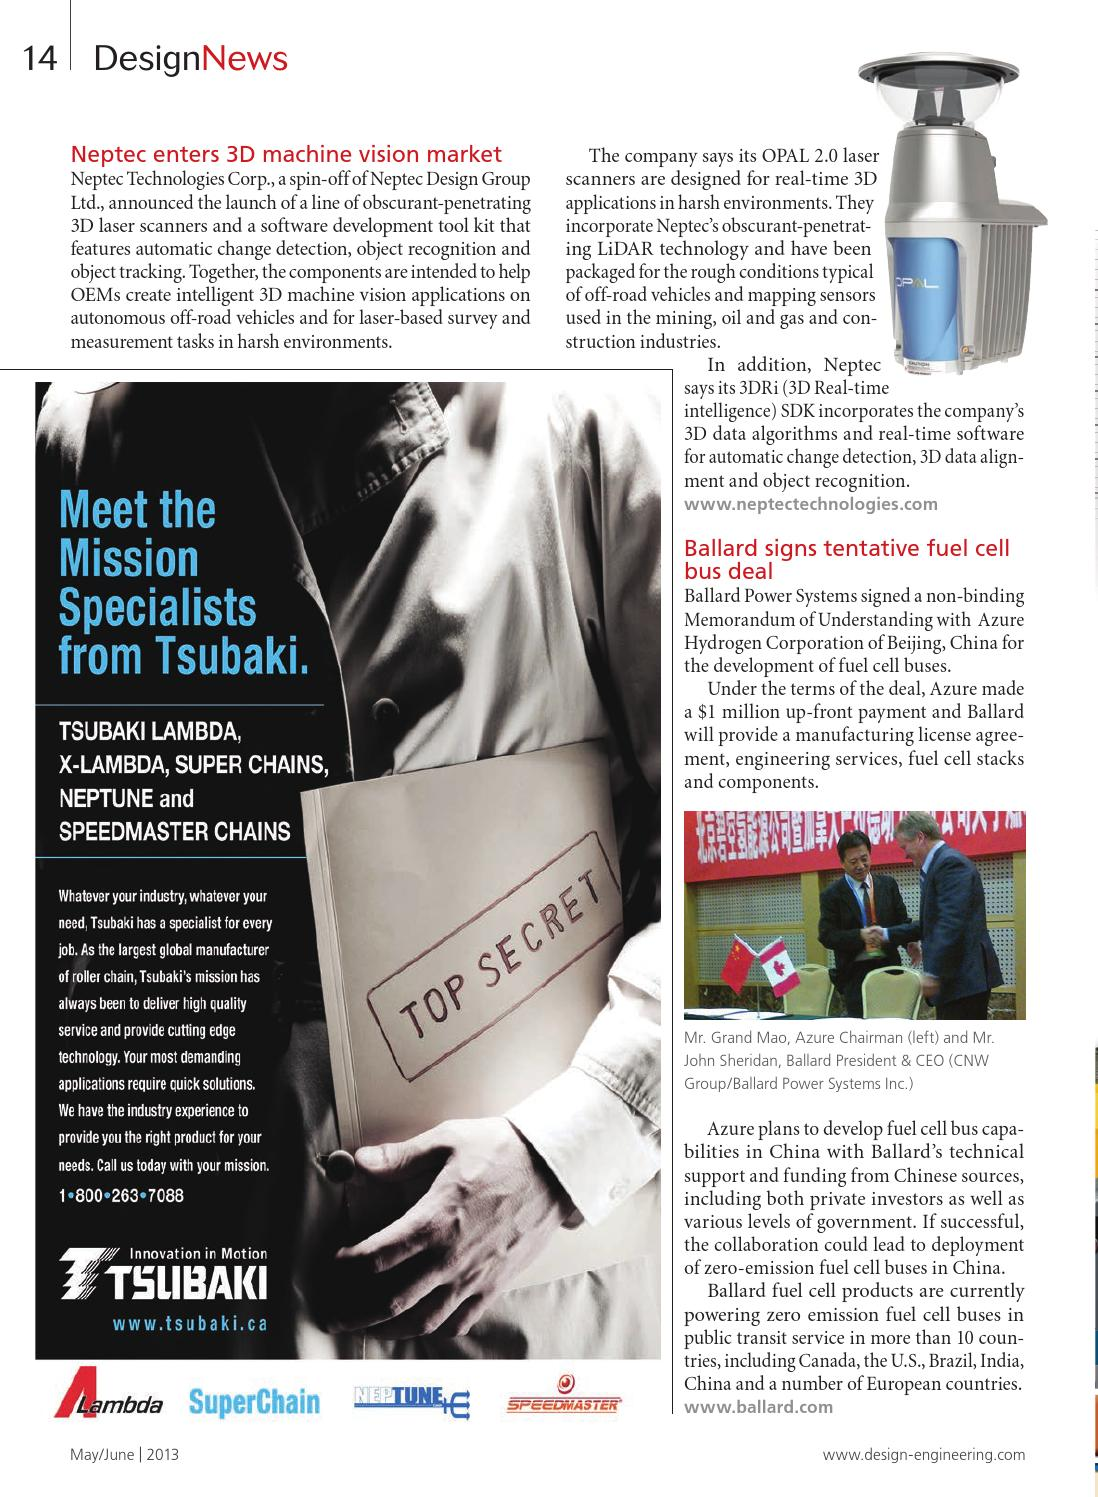 Design Engineering May/June 2013 by Annex Business Media - issuu